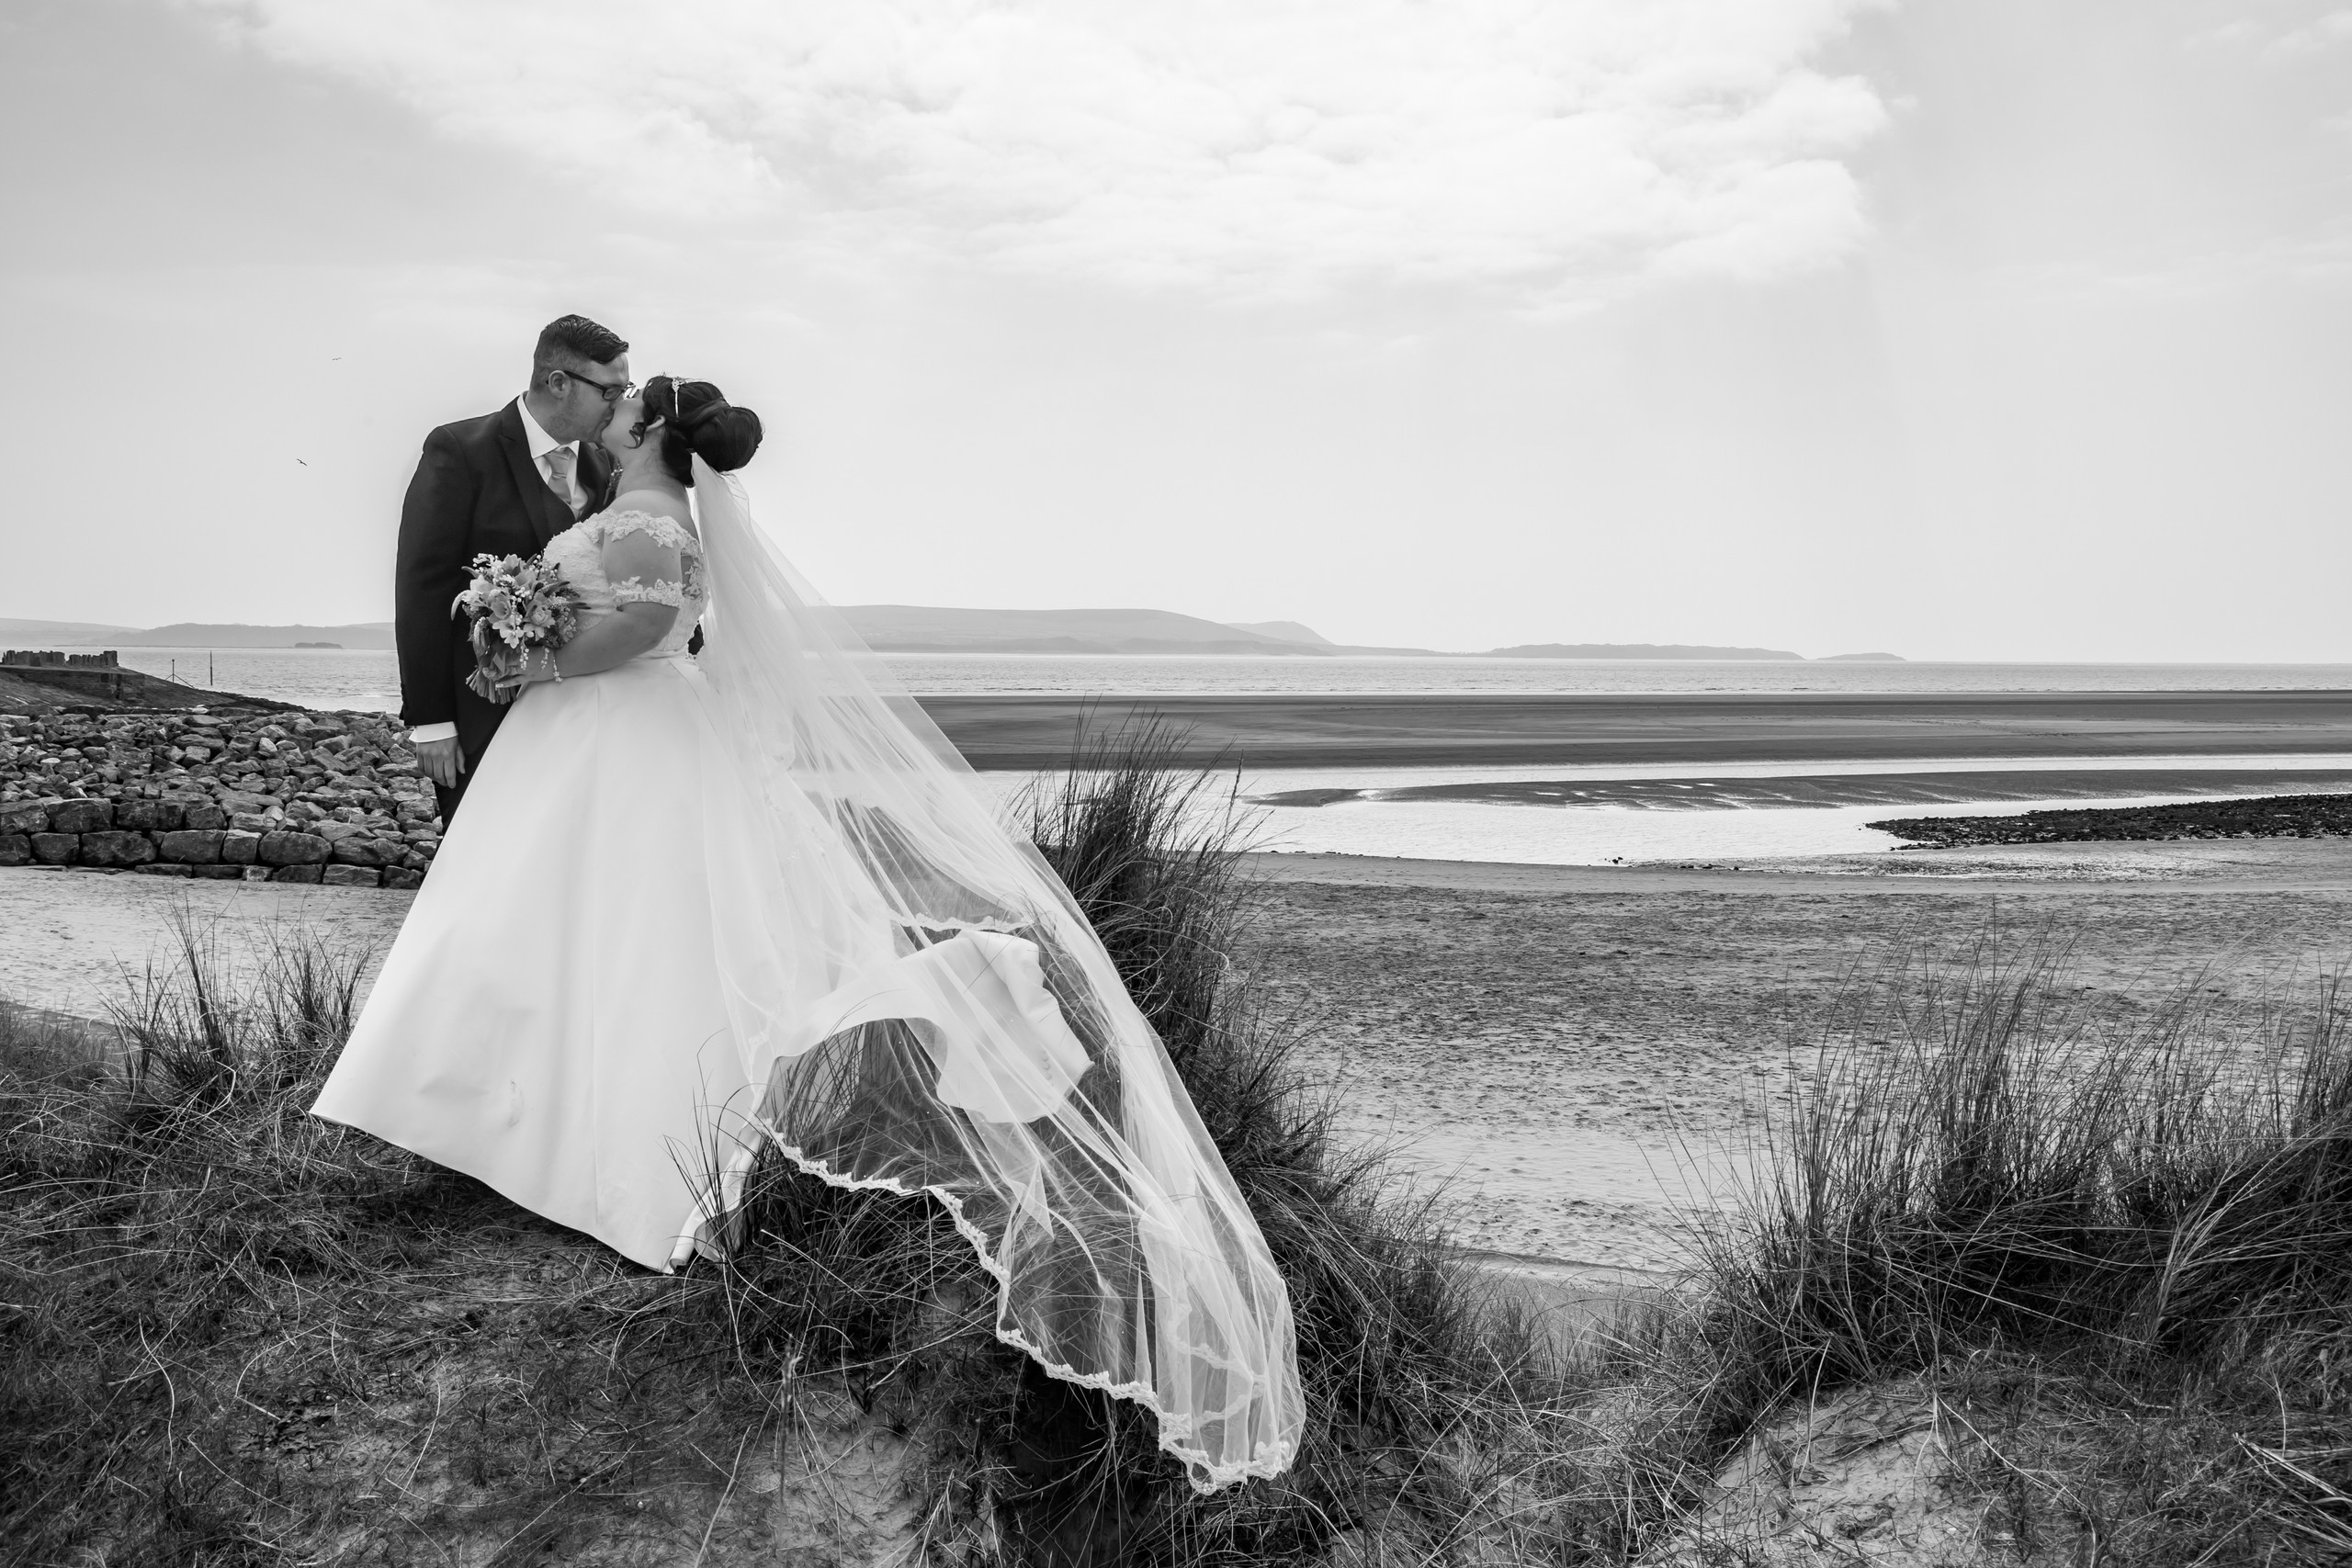 Wedding Kiss on the Beach at Burry Port Harbour, Llanelli, Carmarthenshire